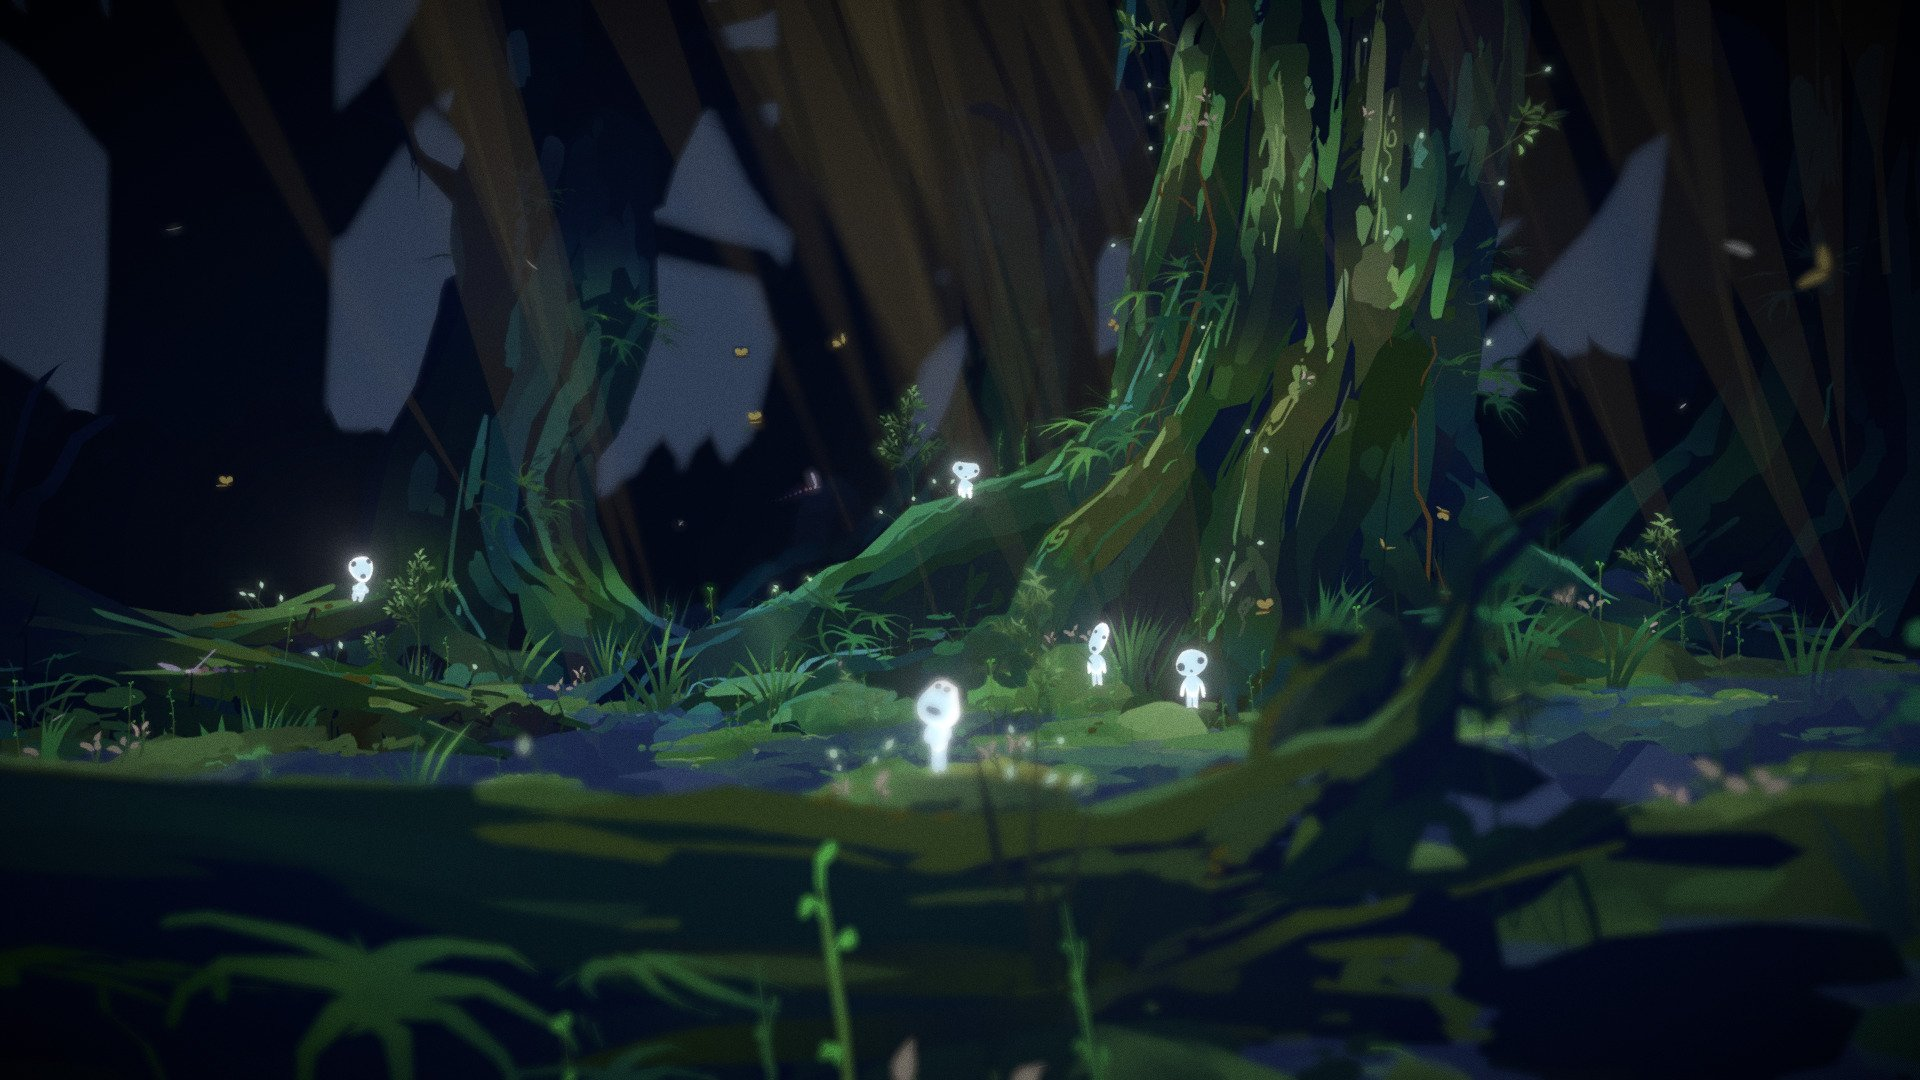 Princess Mononoke Kodama Spirit Forest Vr 3d Model By